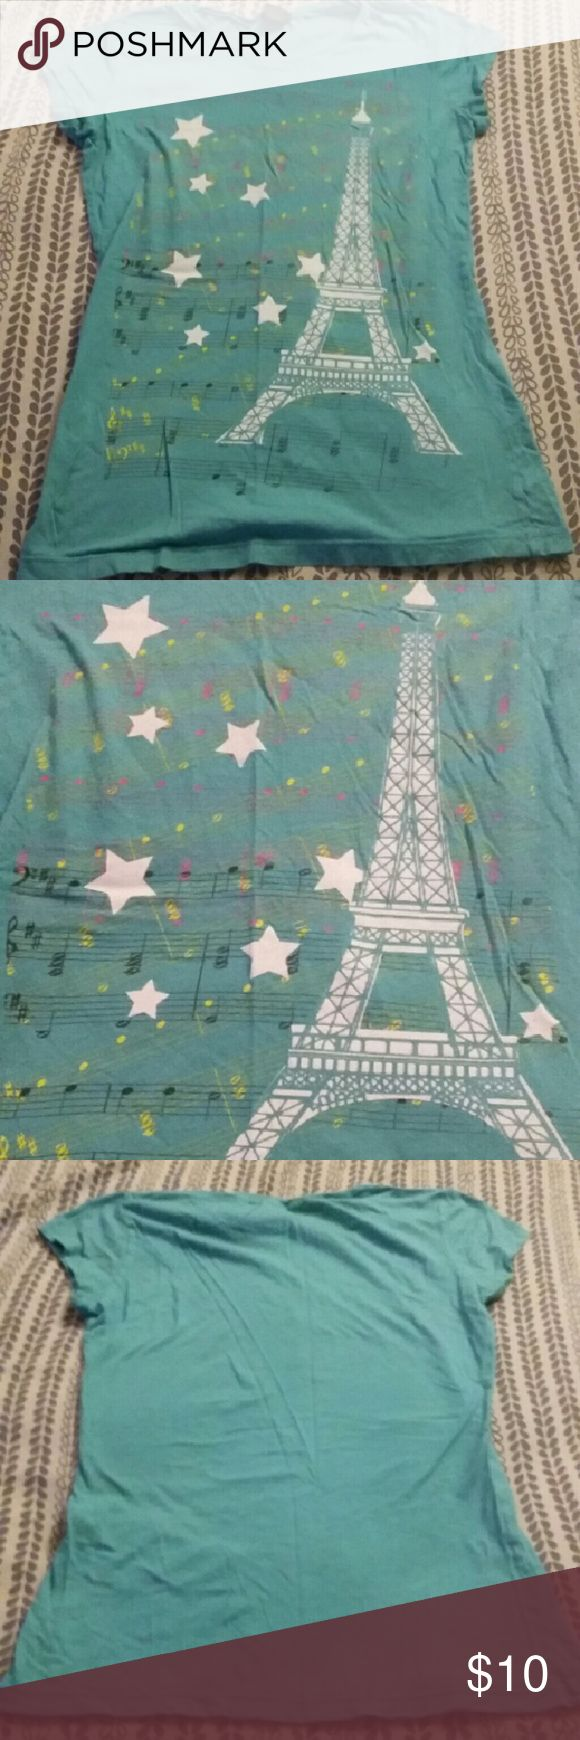 Rue 21 Paris Shirt Eiffel Tower with music scores and notes and stars Rue21 Tops Tees - Short Sleeve